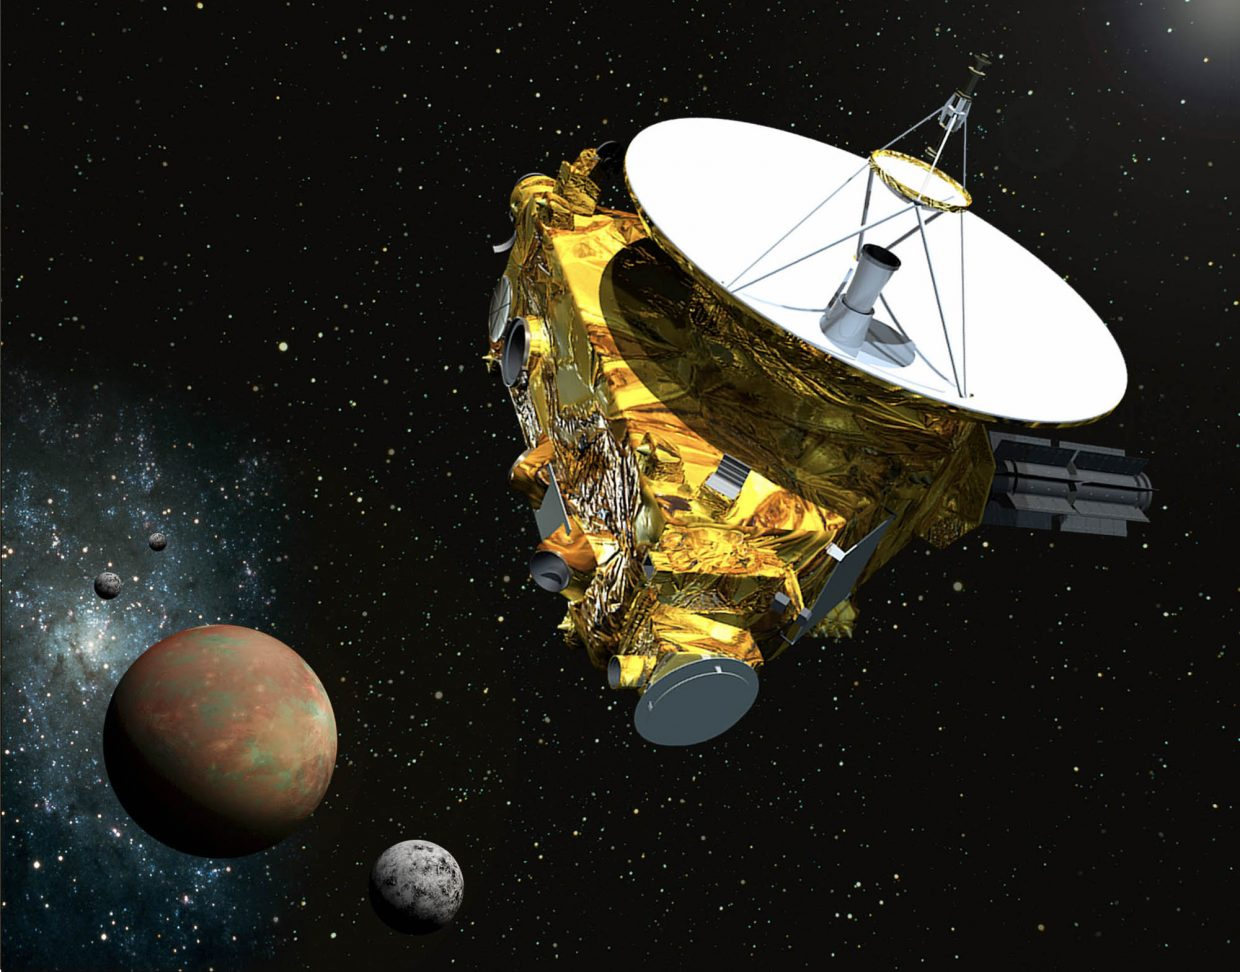 When NASA's New Horizons spacecraft flies past Pluto on July 14, the little dot that we've known as Pluto will become a real world, complete with craters and mountains and frozen lakes and — who knows what else? Mission scientist Dr. Fran Bagenal will give a free public preview of what we might expect at 7 p.m. Wednesday in Colorado Mountain College's Allbright Family Auditorium.